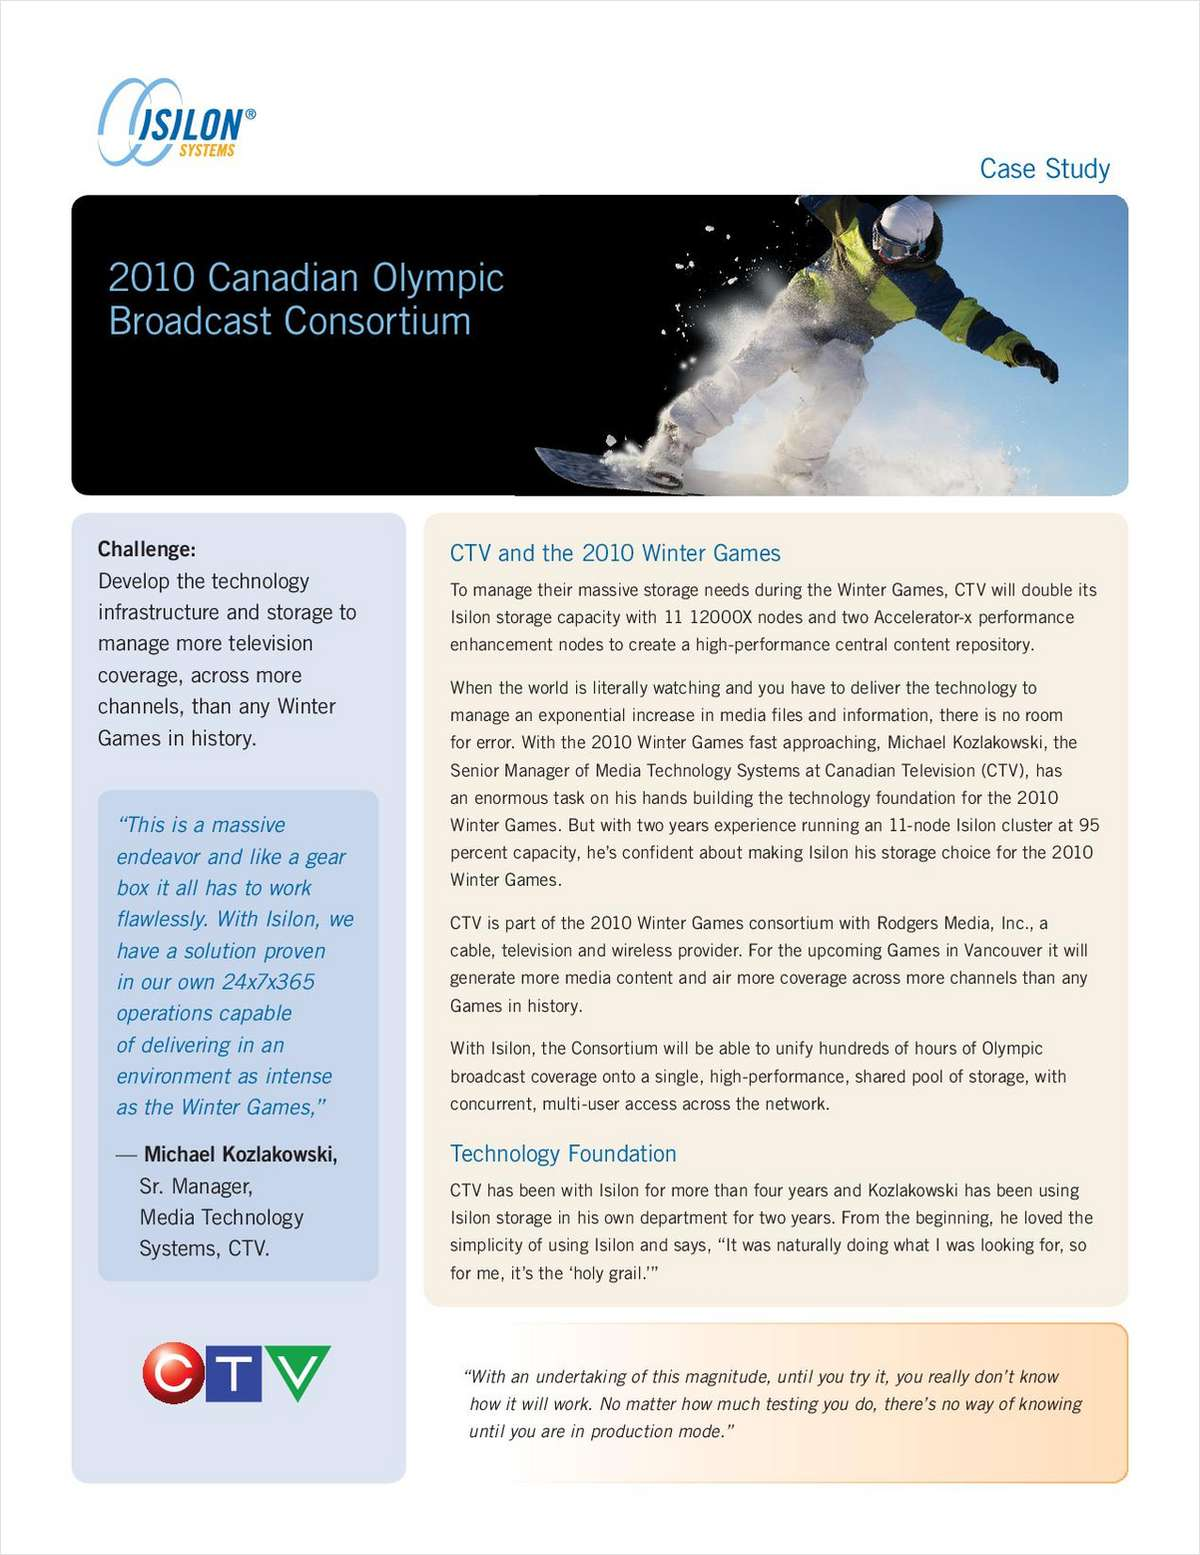 Isilon IQ Case Study: 2010 Canadian Olympic Broadcast Consortium